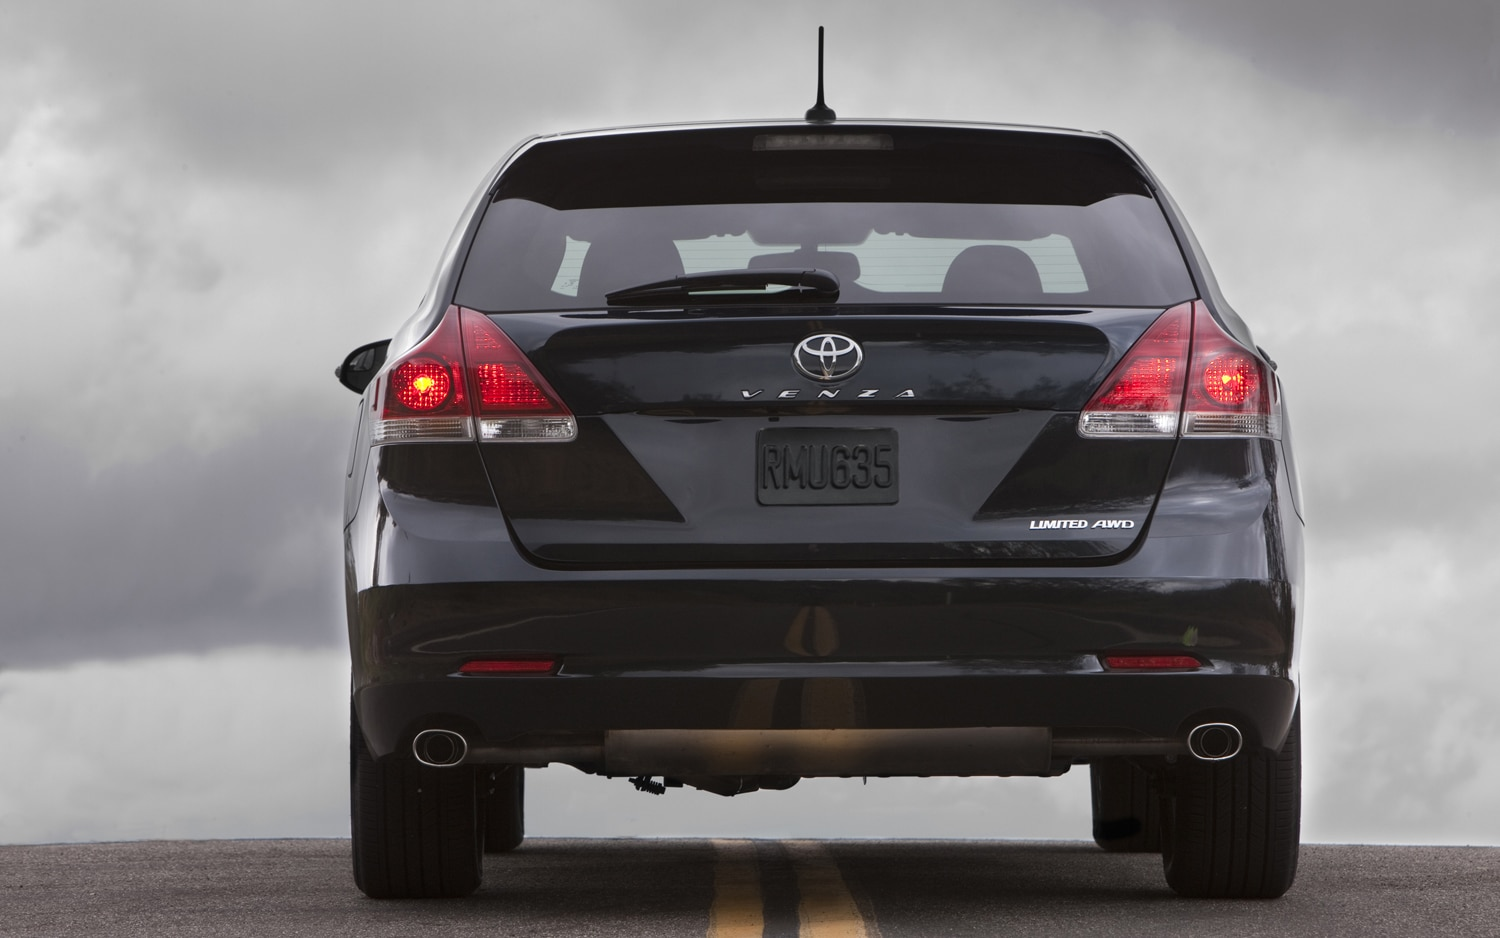 2013 Toyota Venza Rear View